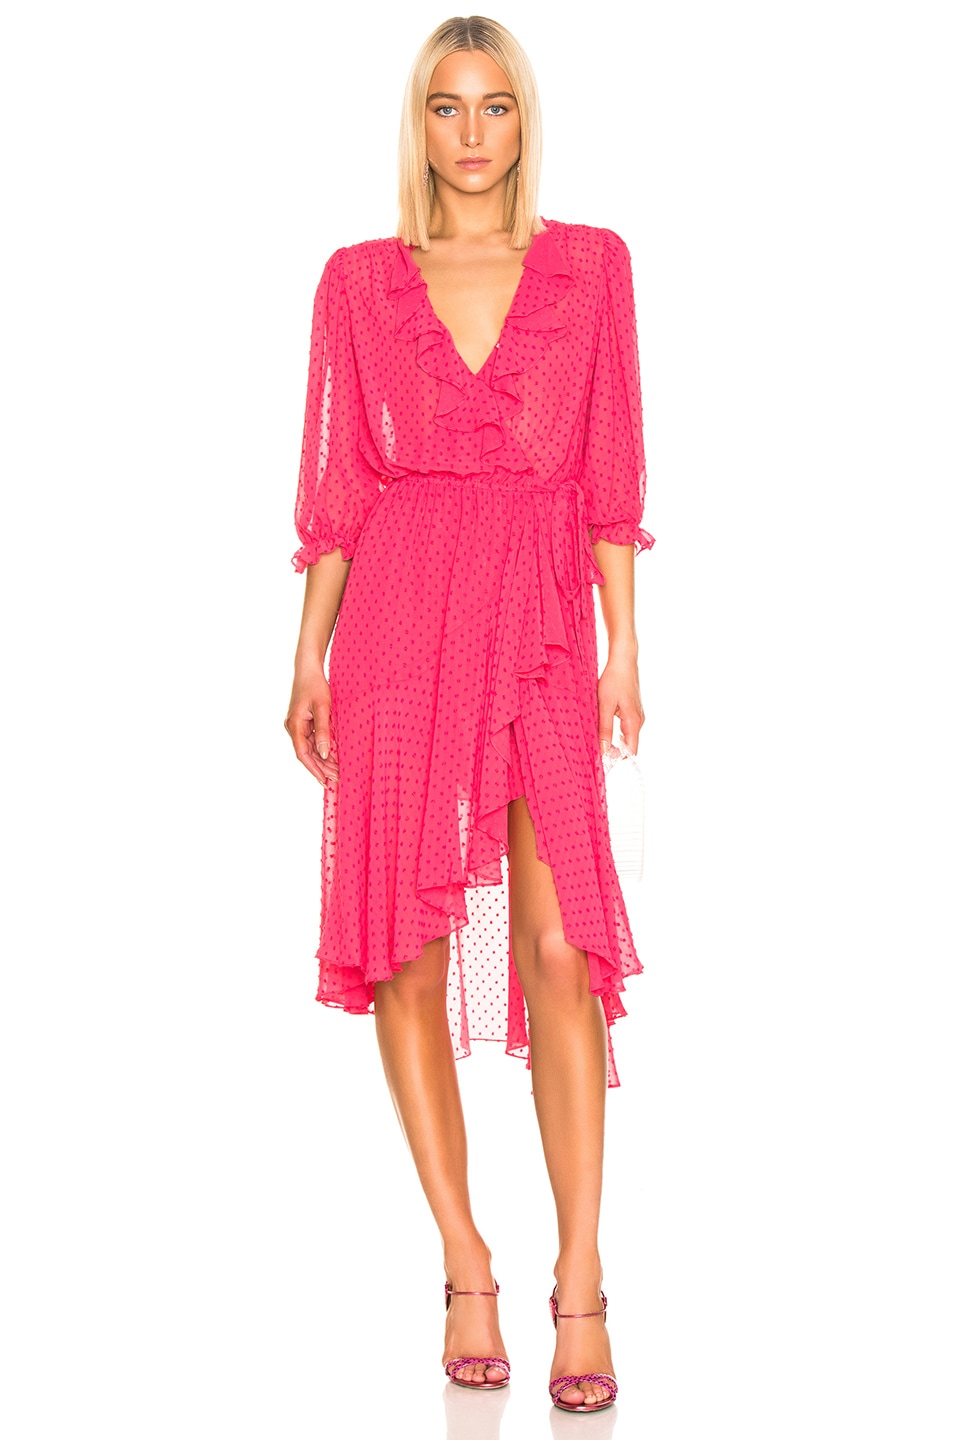 Image 1 of ICONS Objects of Devotion 3/4 Sleeve Cha Cha Wrap Dress in Deep Pink